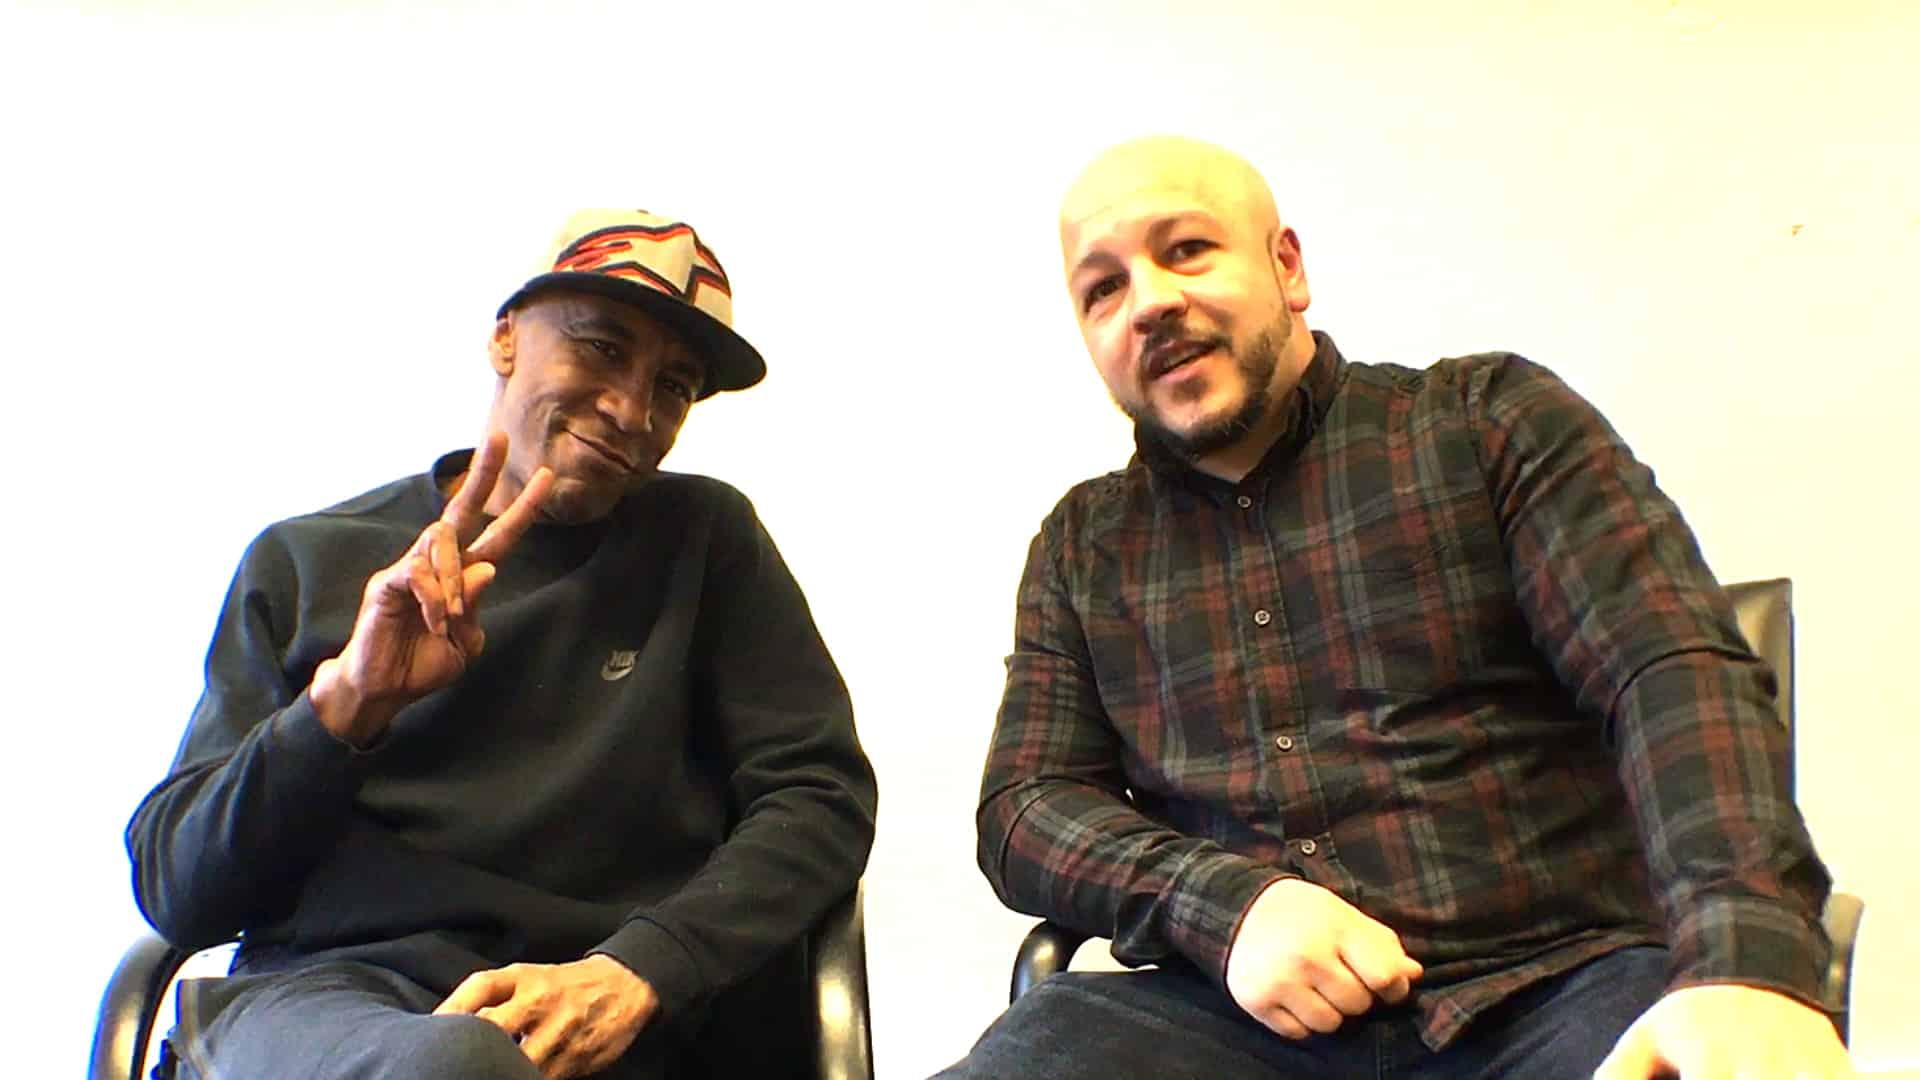 We catch up with Danny John-Jules (aka Cat from Red Dwarf) about his website